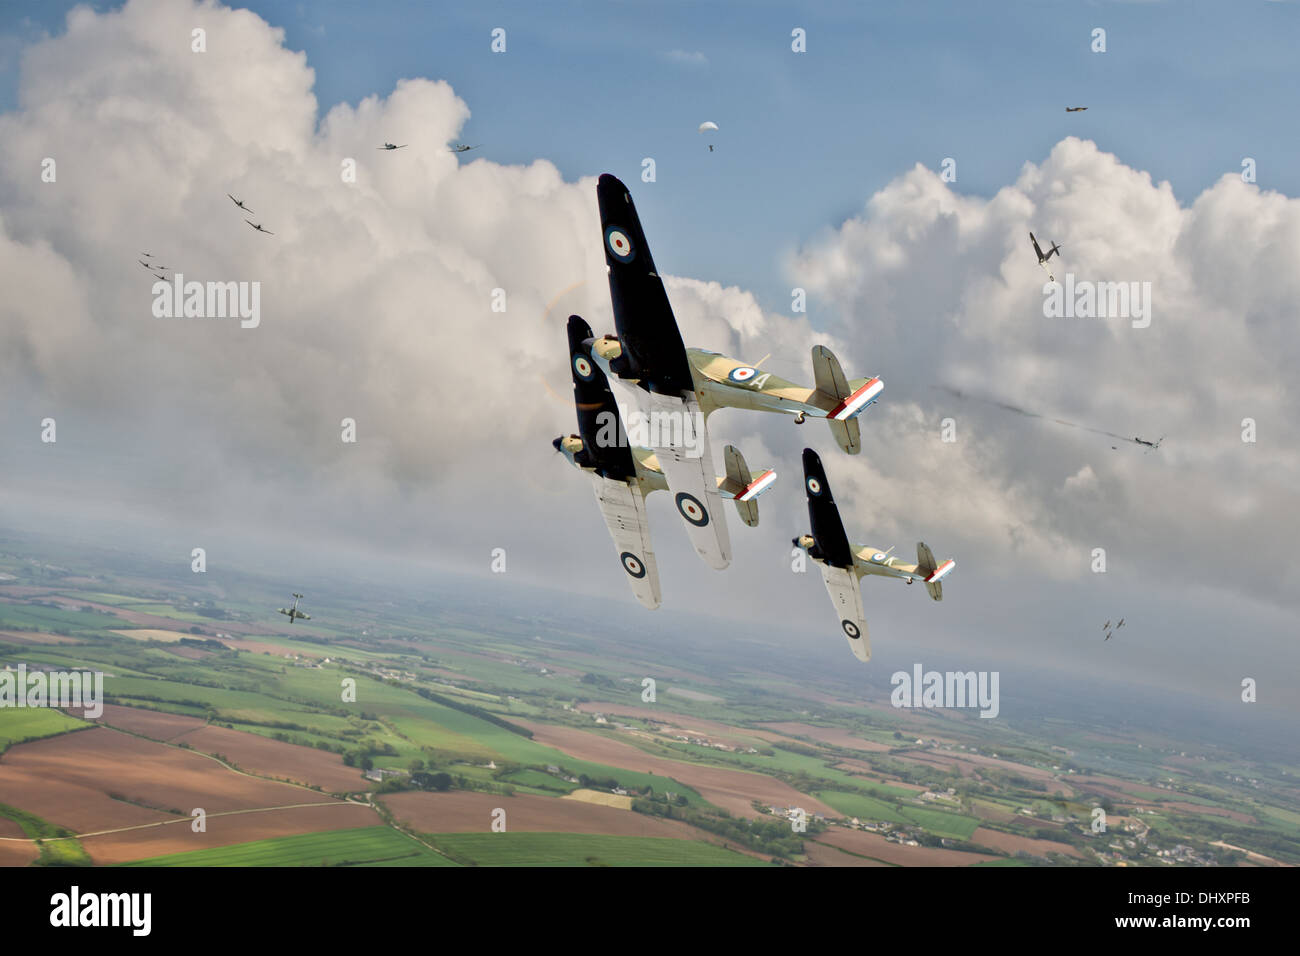 RAF Hurricane fighters go up against Messerschmitt Bf 109 'Emils' in France during the so-called Phoney War in early 1940. - Stock Image